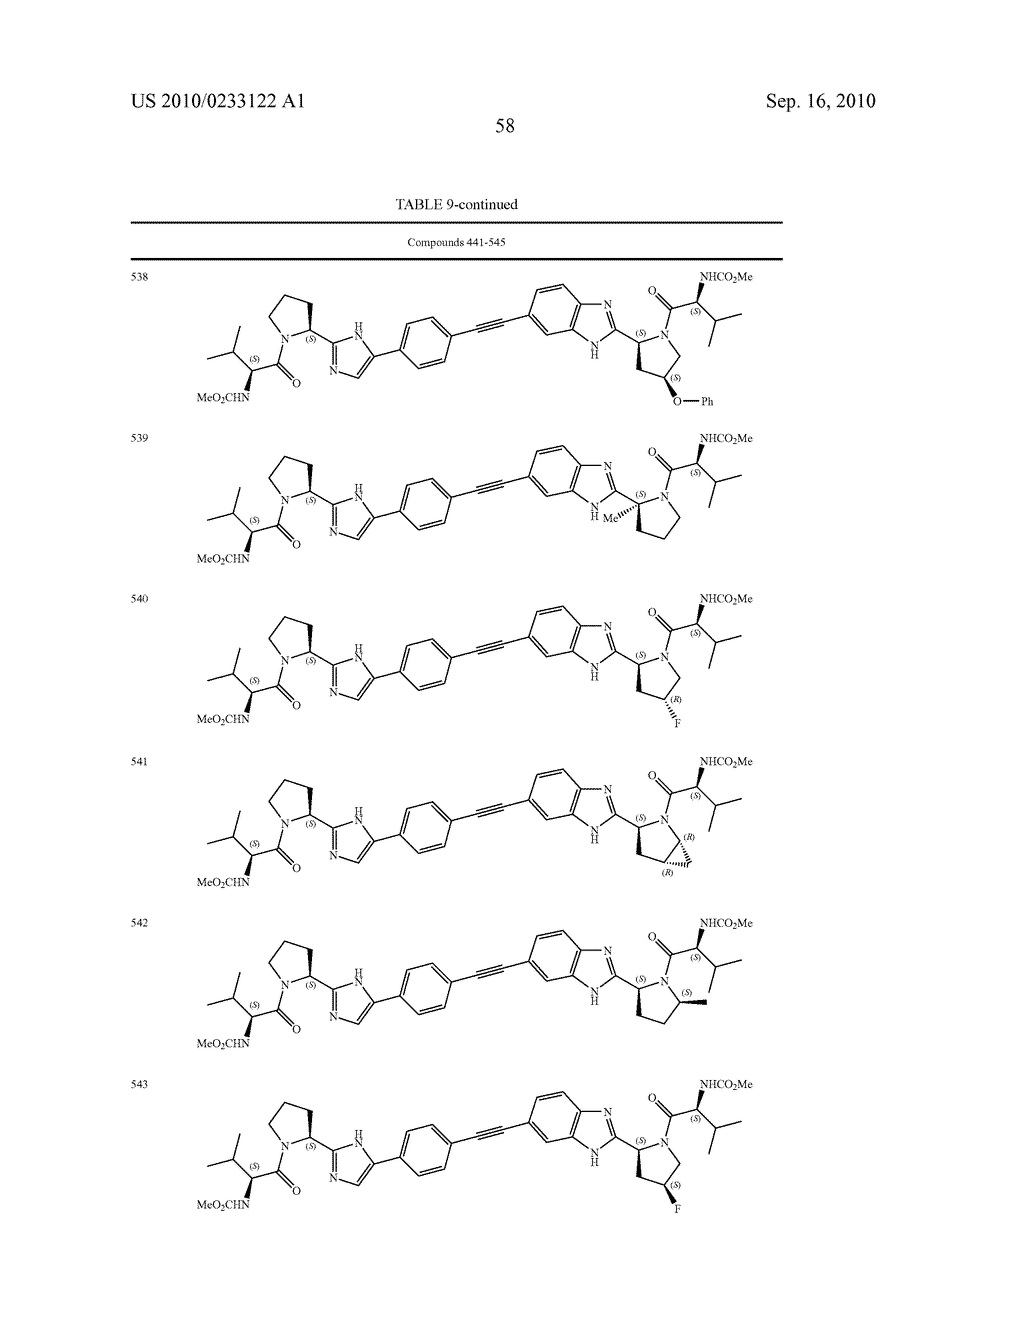 NOVEL BENZIMIDAZOLE DERIVATIVES - diagram, schematic, and image 59